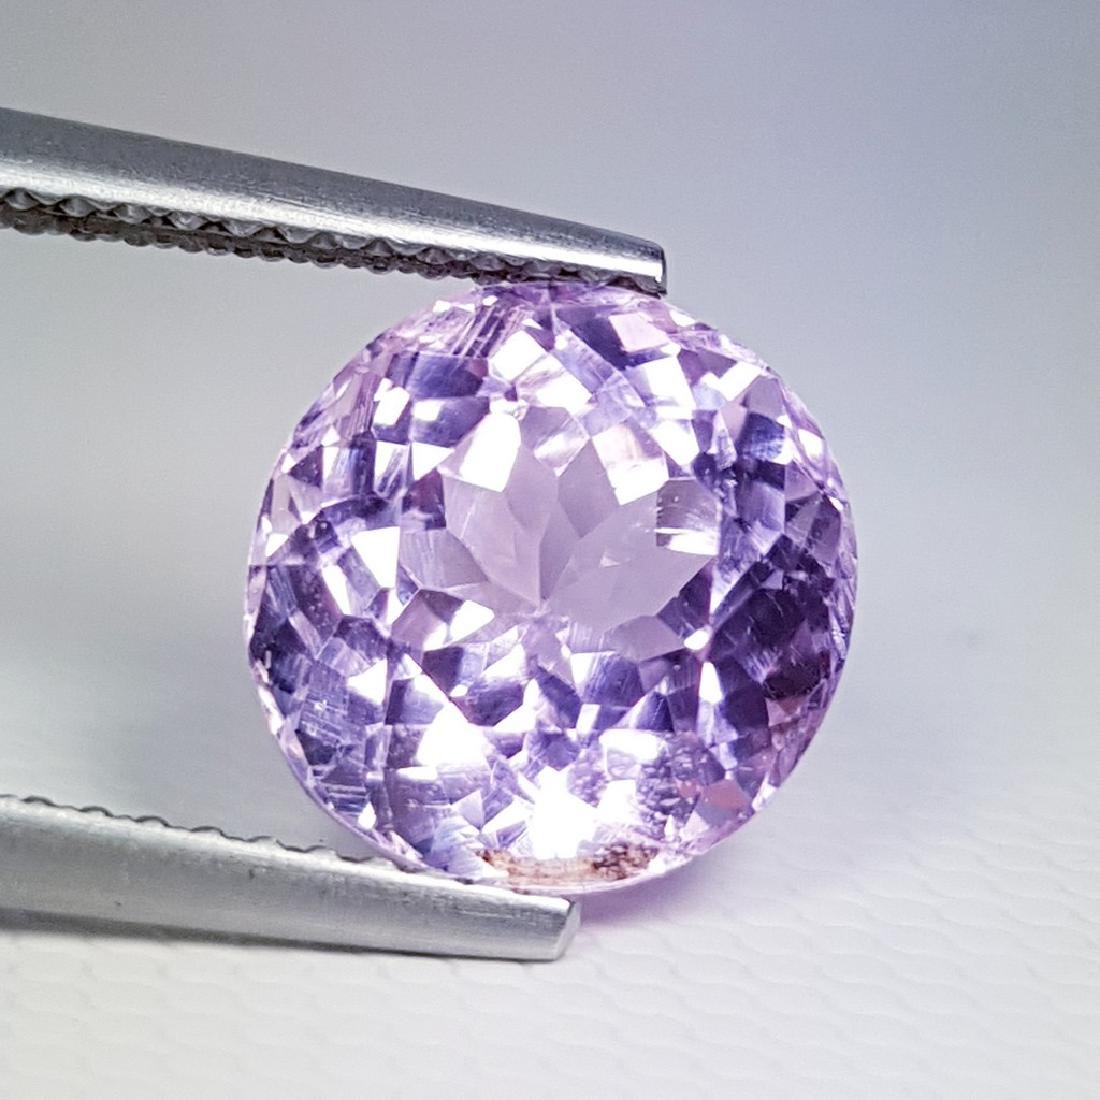 4.14 ct Excellent Gem Natural Pink Kunzite - 3